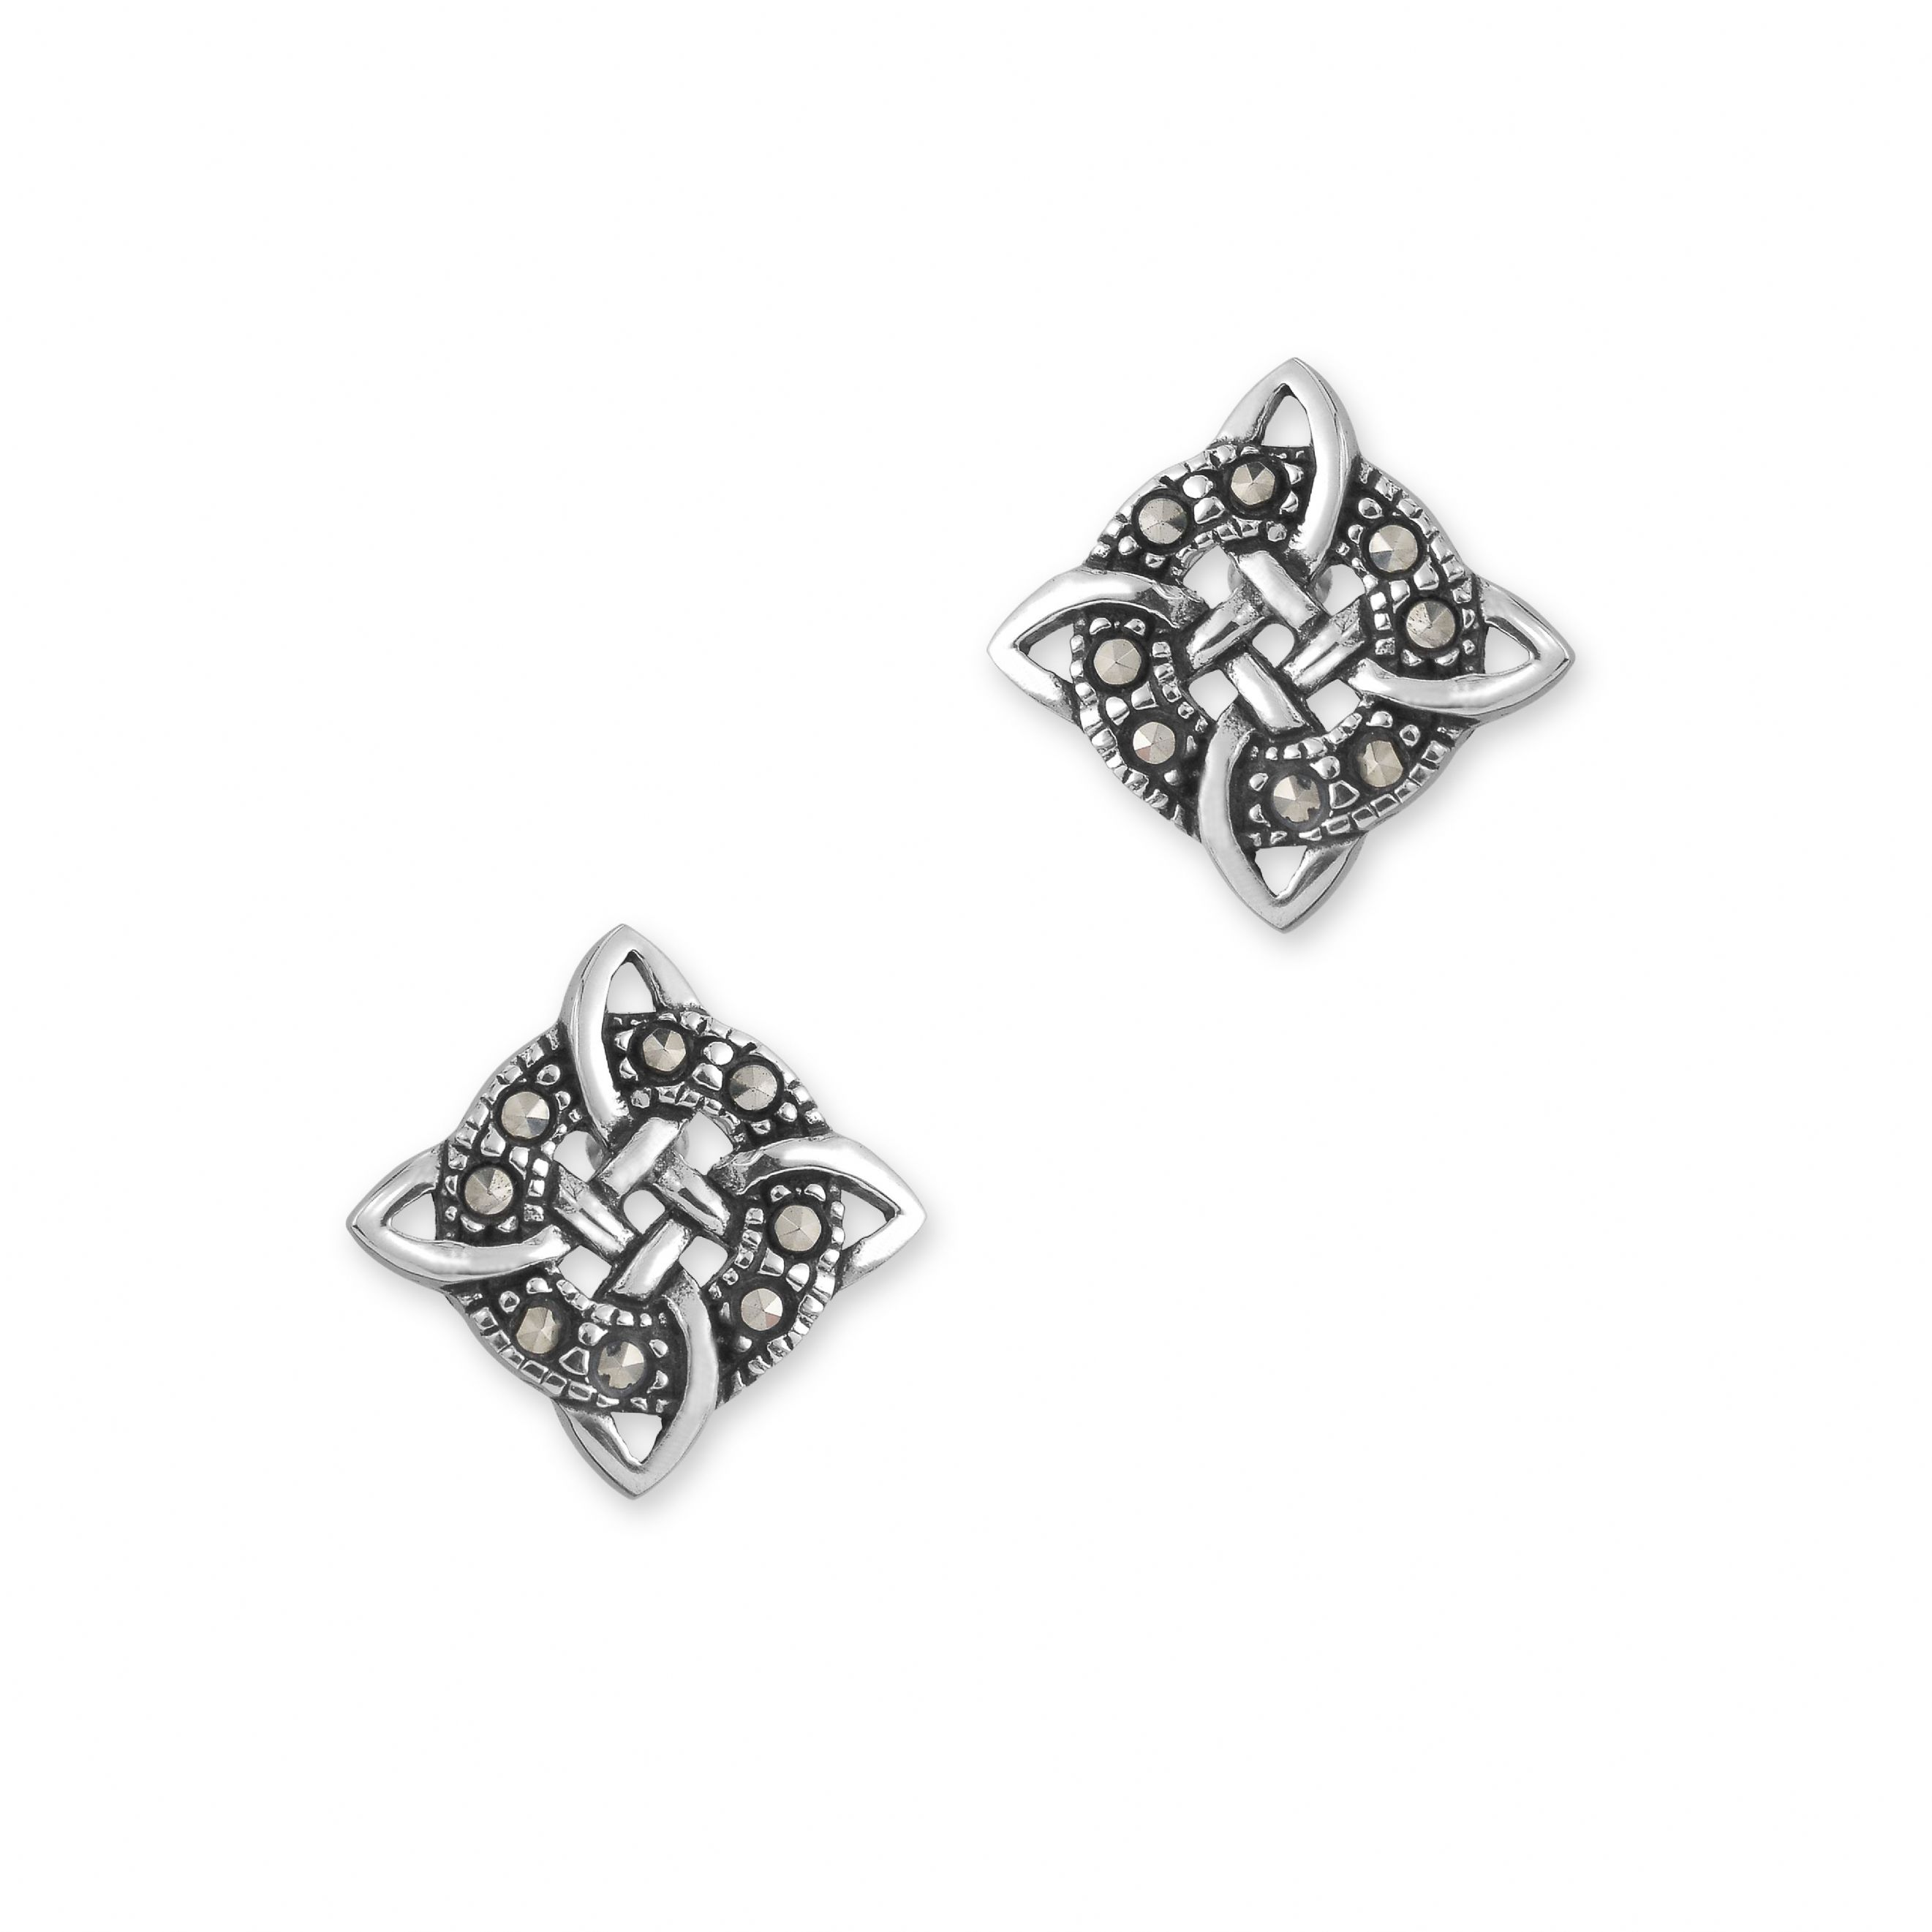 silver celtic knot free earrings jewelry thailand overstock shipping orders stud sterling watches continuity over on donut handmade product